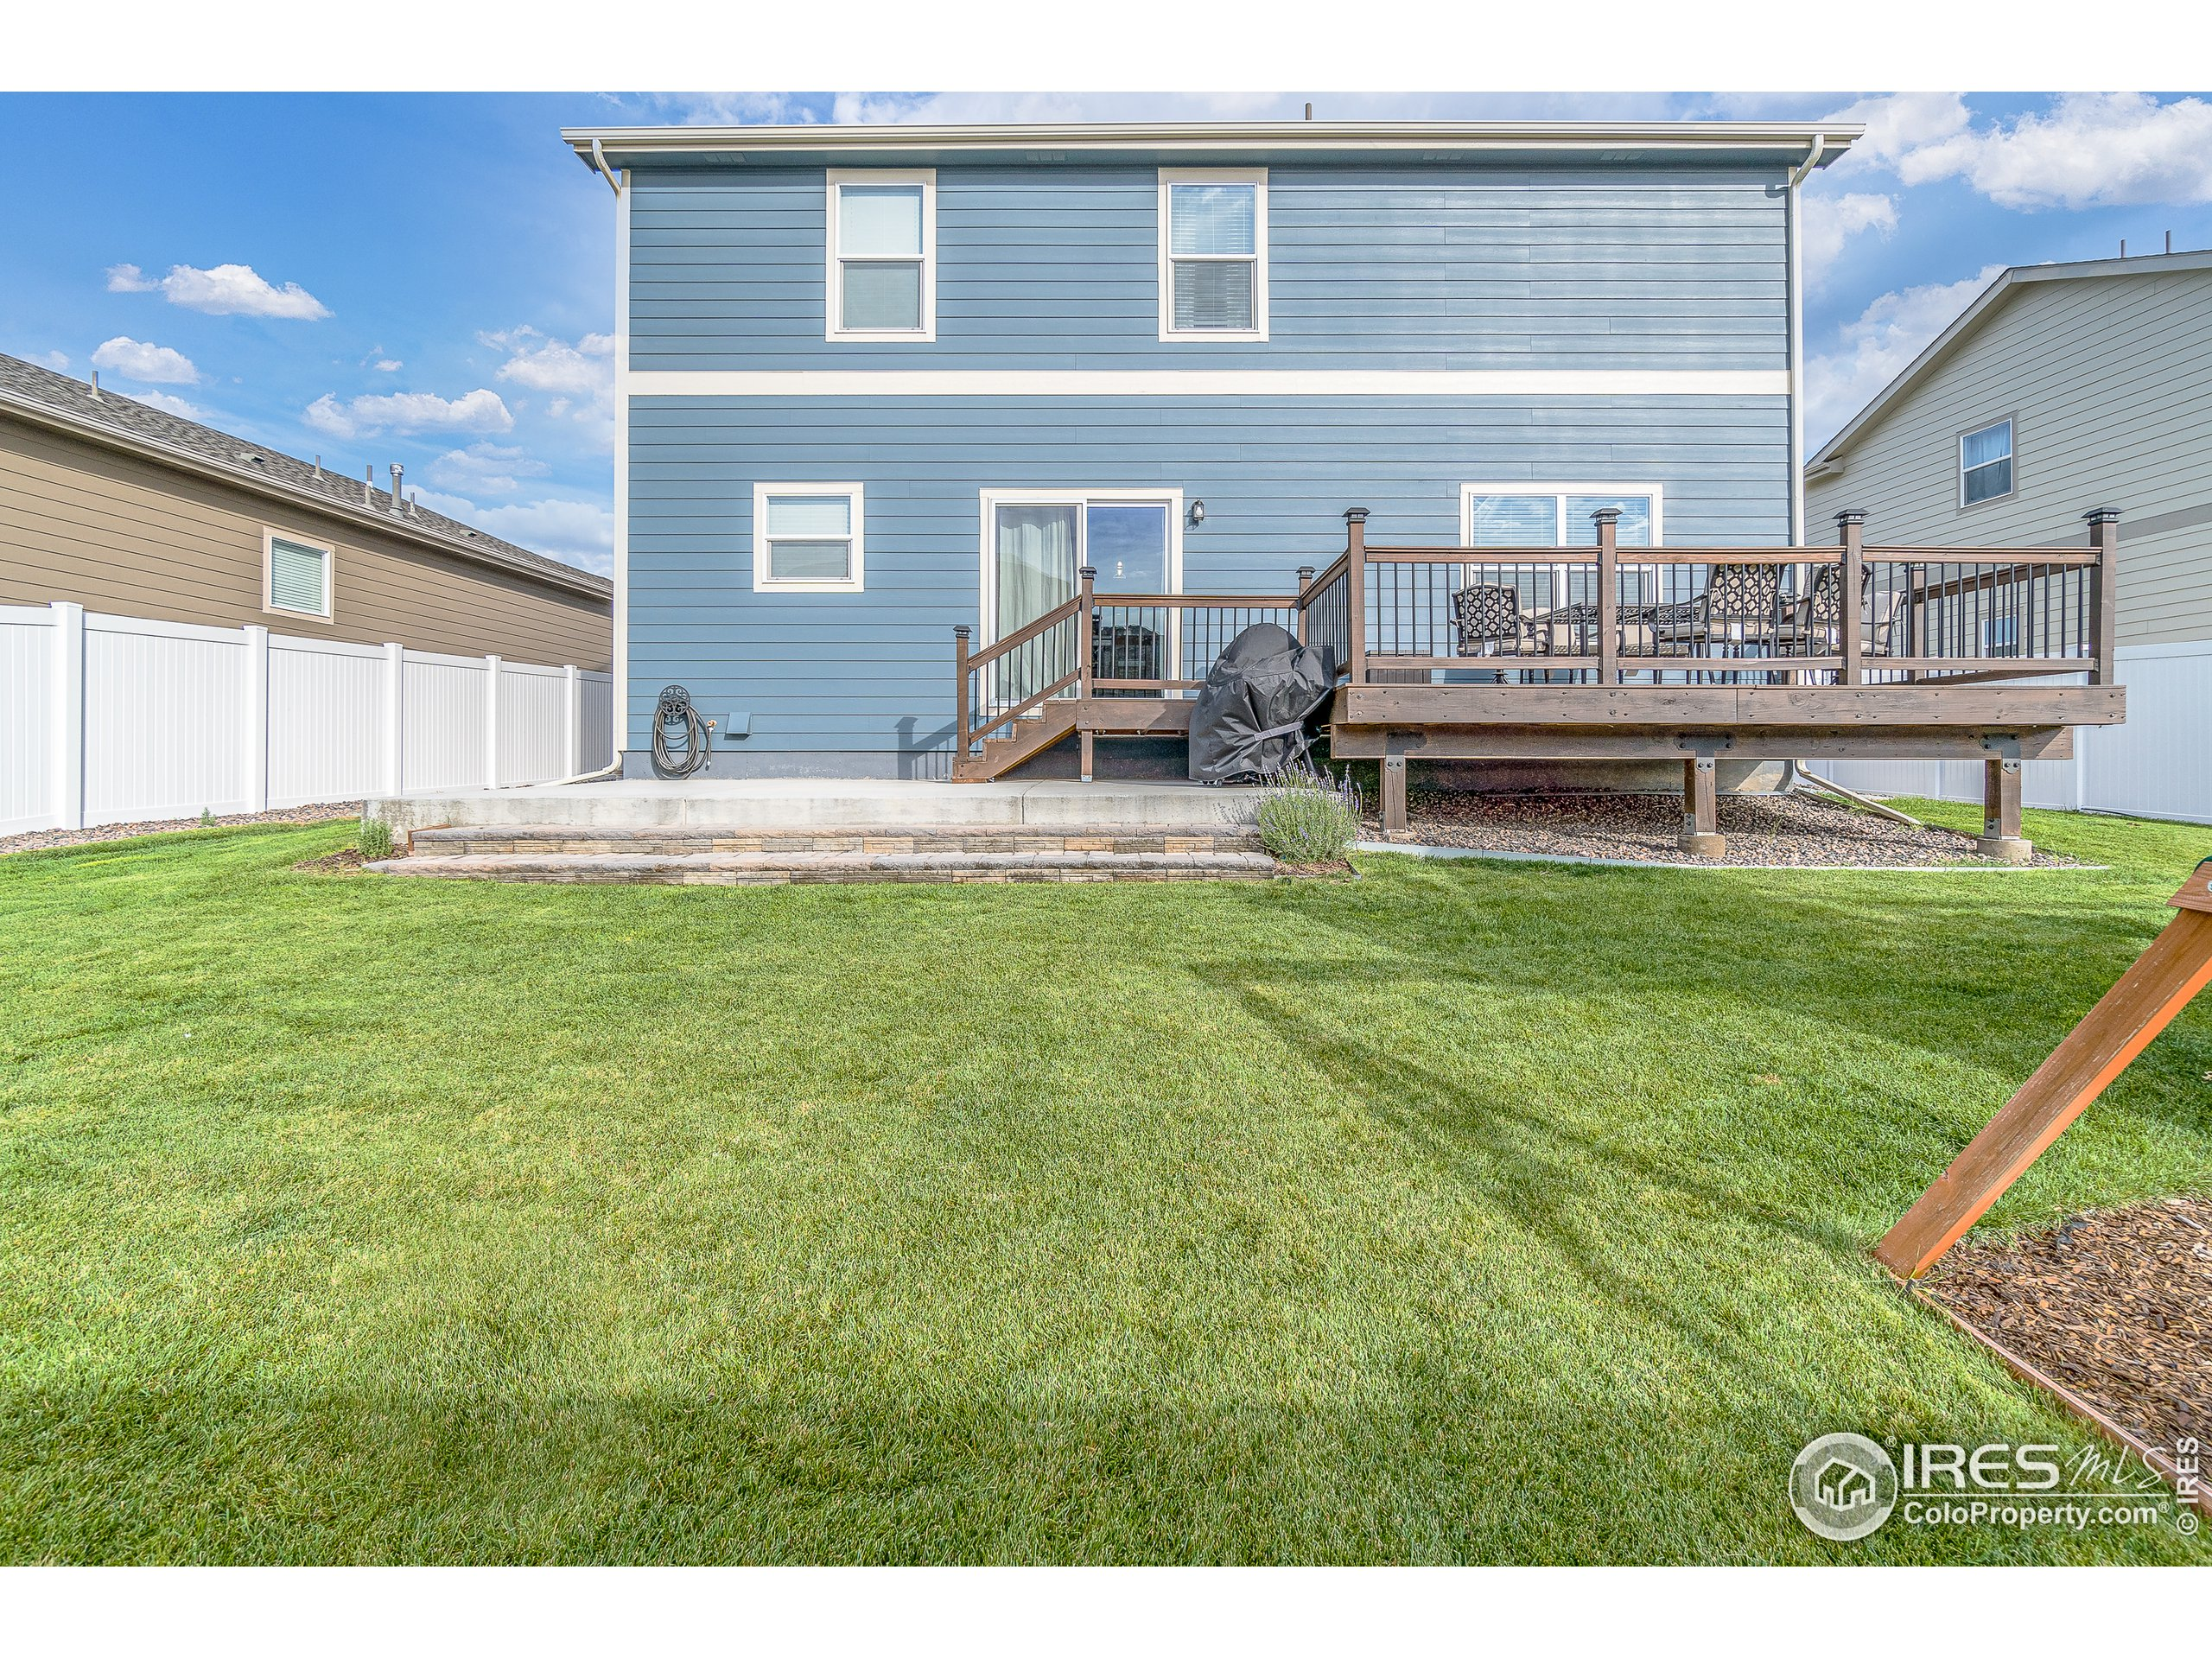 Large backyard with deck